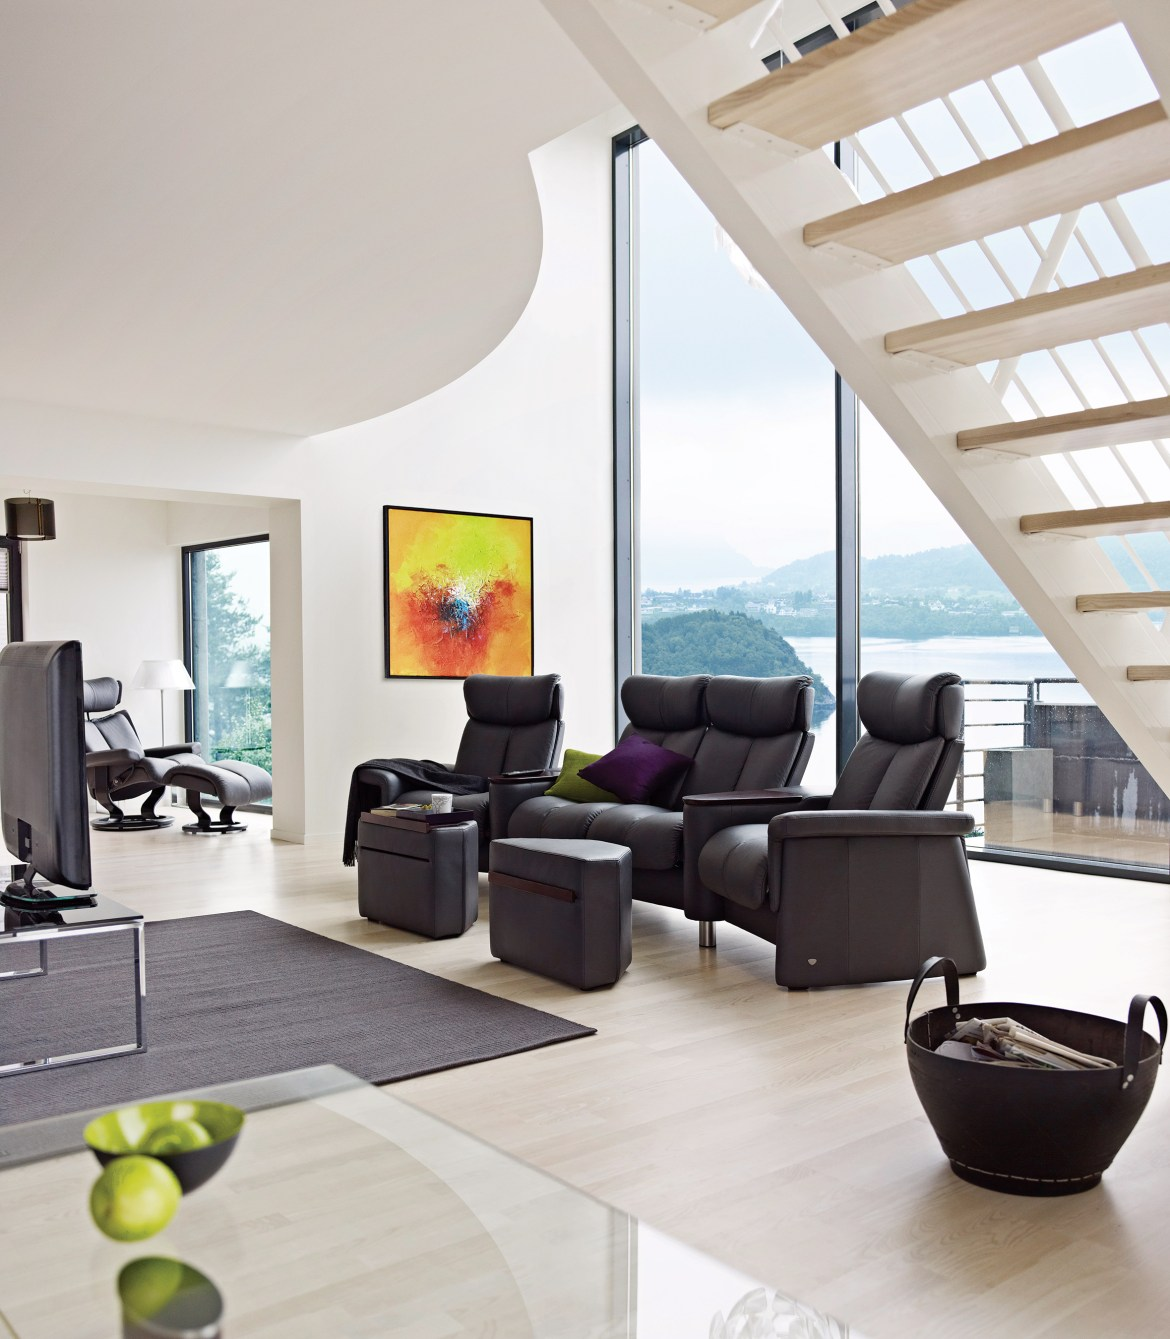 Stressless Combines High Tech Manufacturing With High Touch Design For Smart Home Chic